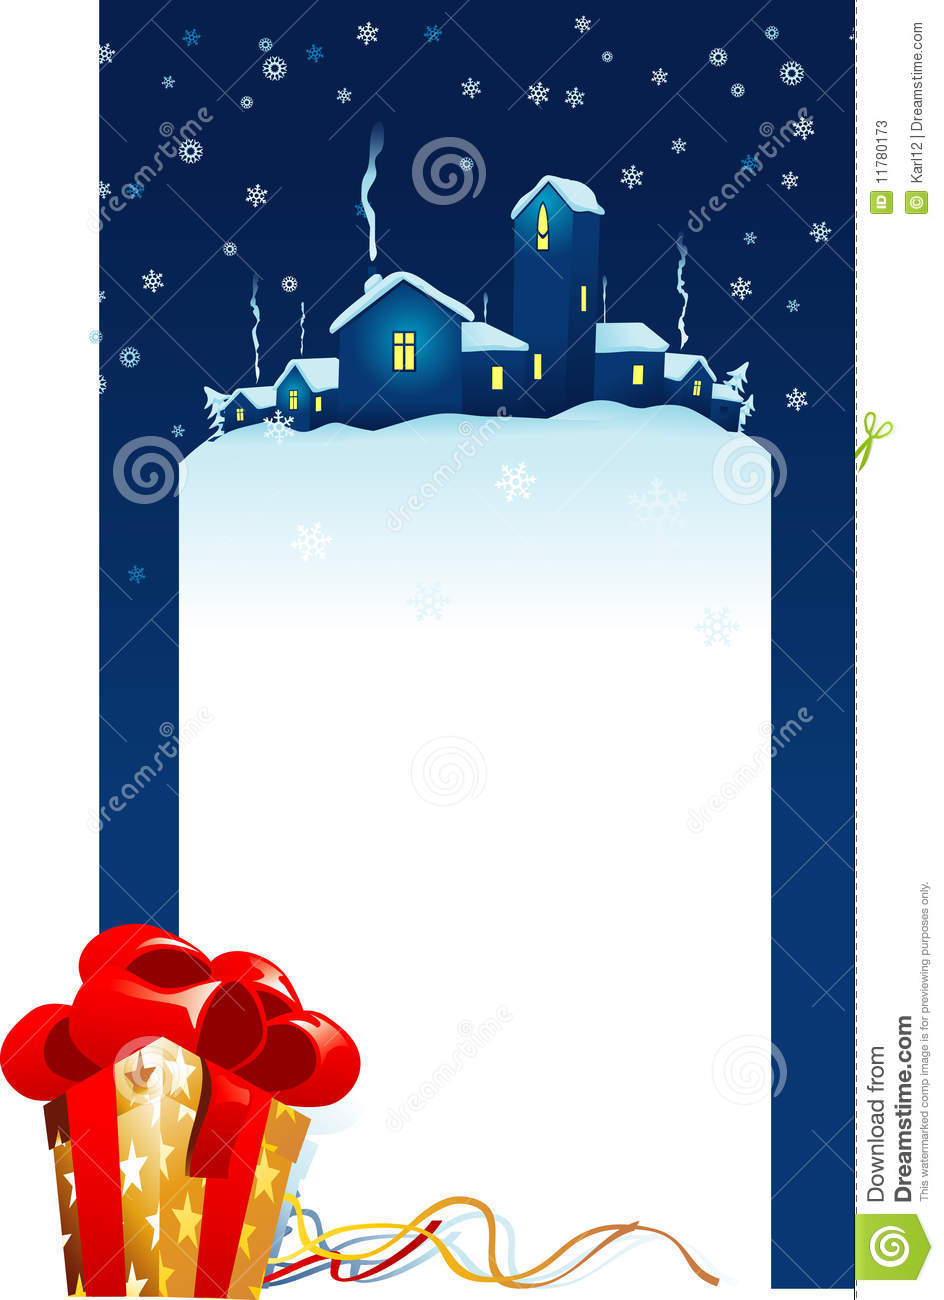 More similar stock images of ` Christmas poster `